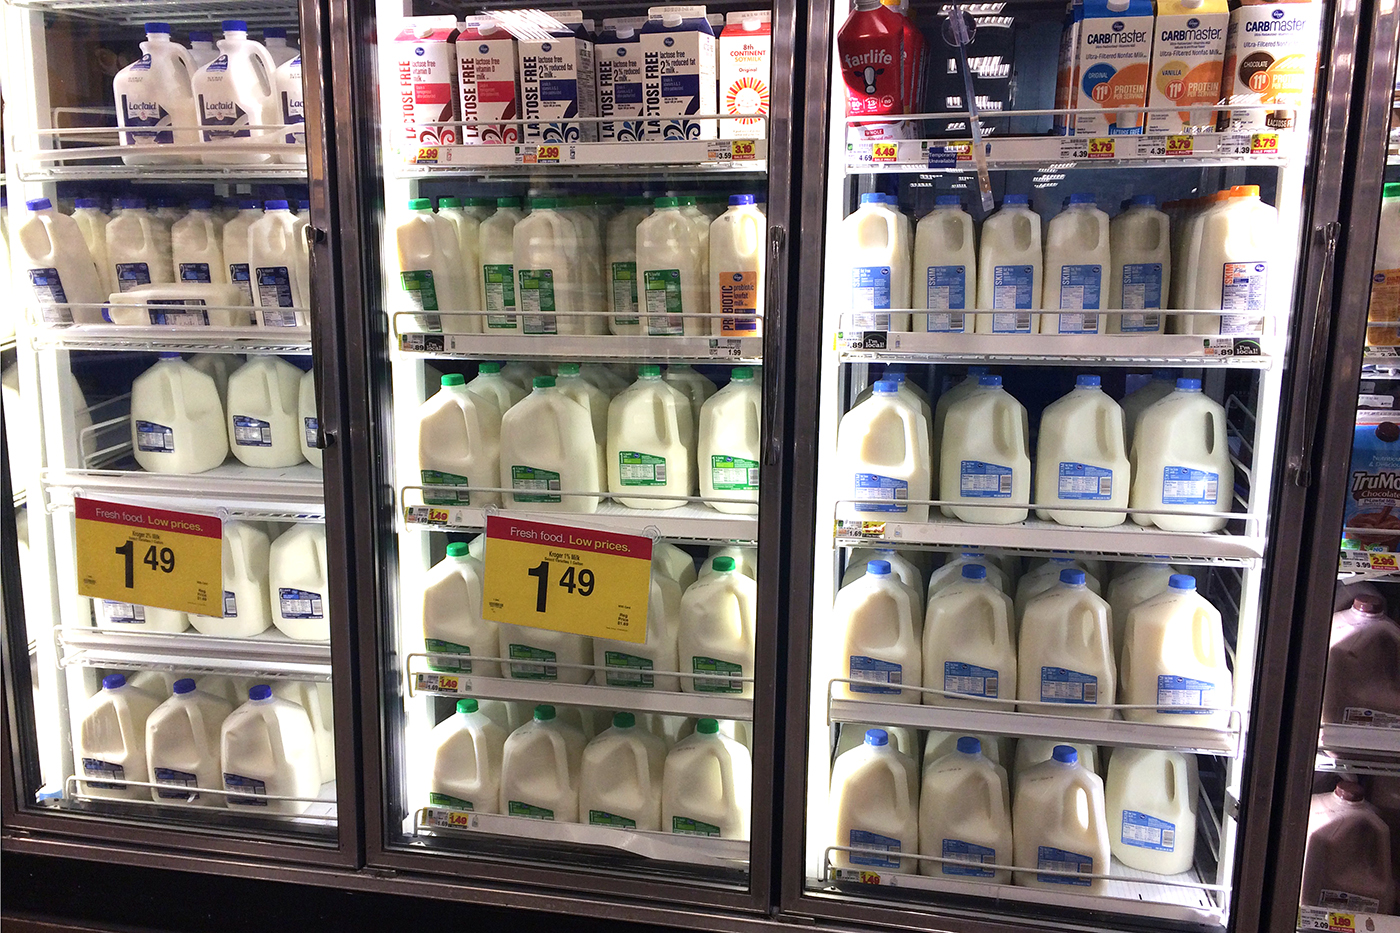 When the government subsidizes corn, it effectively subsidizes dairy, too. Government nutrition programs push dairy as a cheap protein source, even though it doesn't make sense for most Americans, in particular, people of color. (Kayte Young/WFIU)